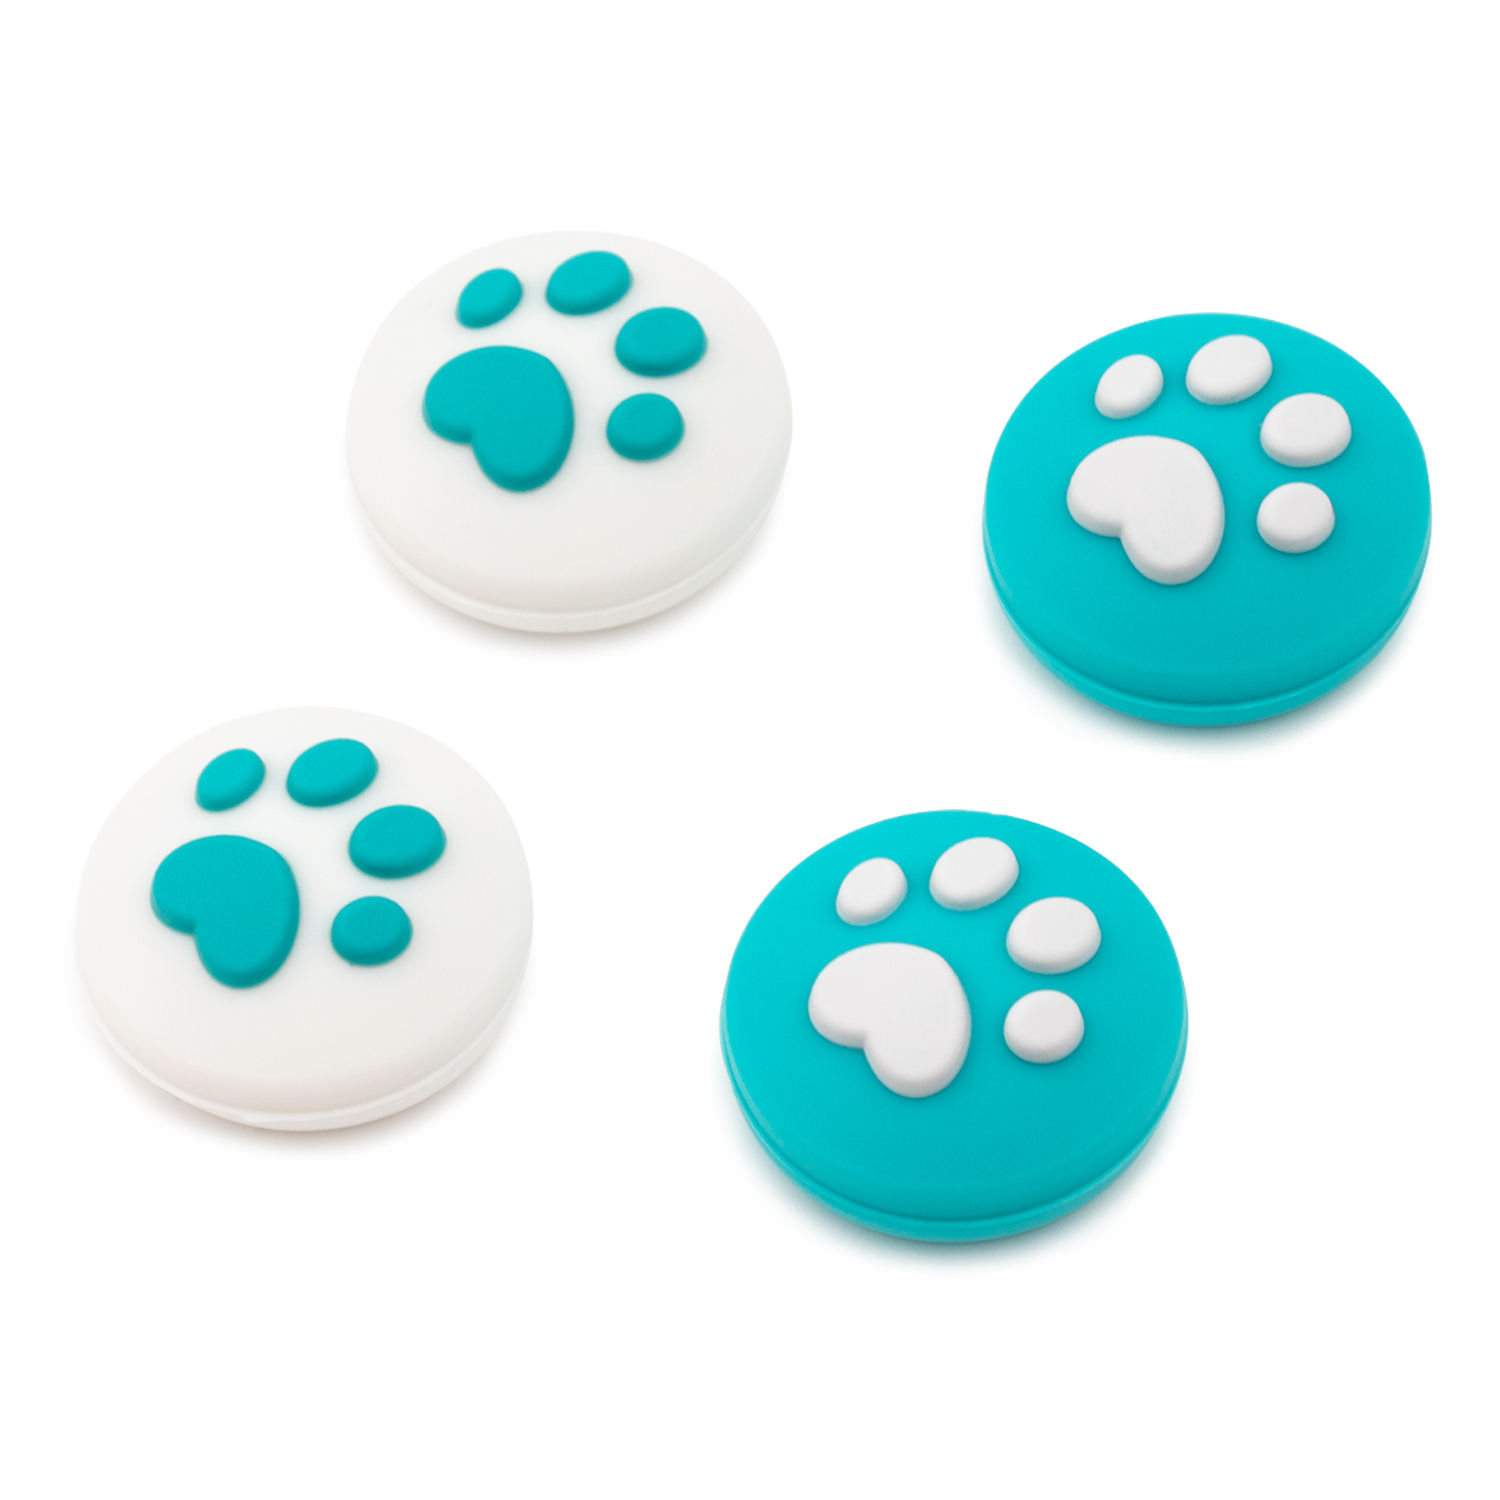 Geekshare Free Sample Cat Paw switch 3D Thumb Grip For Nintendo Switch Joycon Controller Thumbstick Cover Joystick